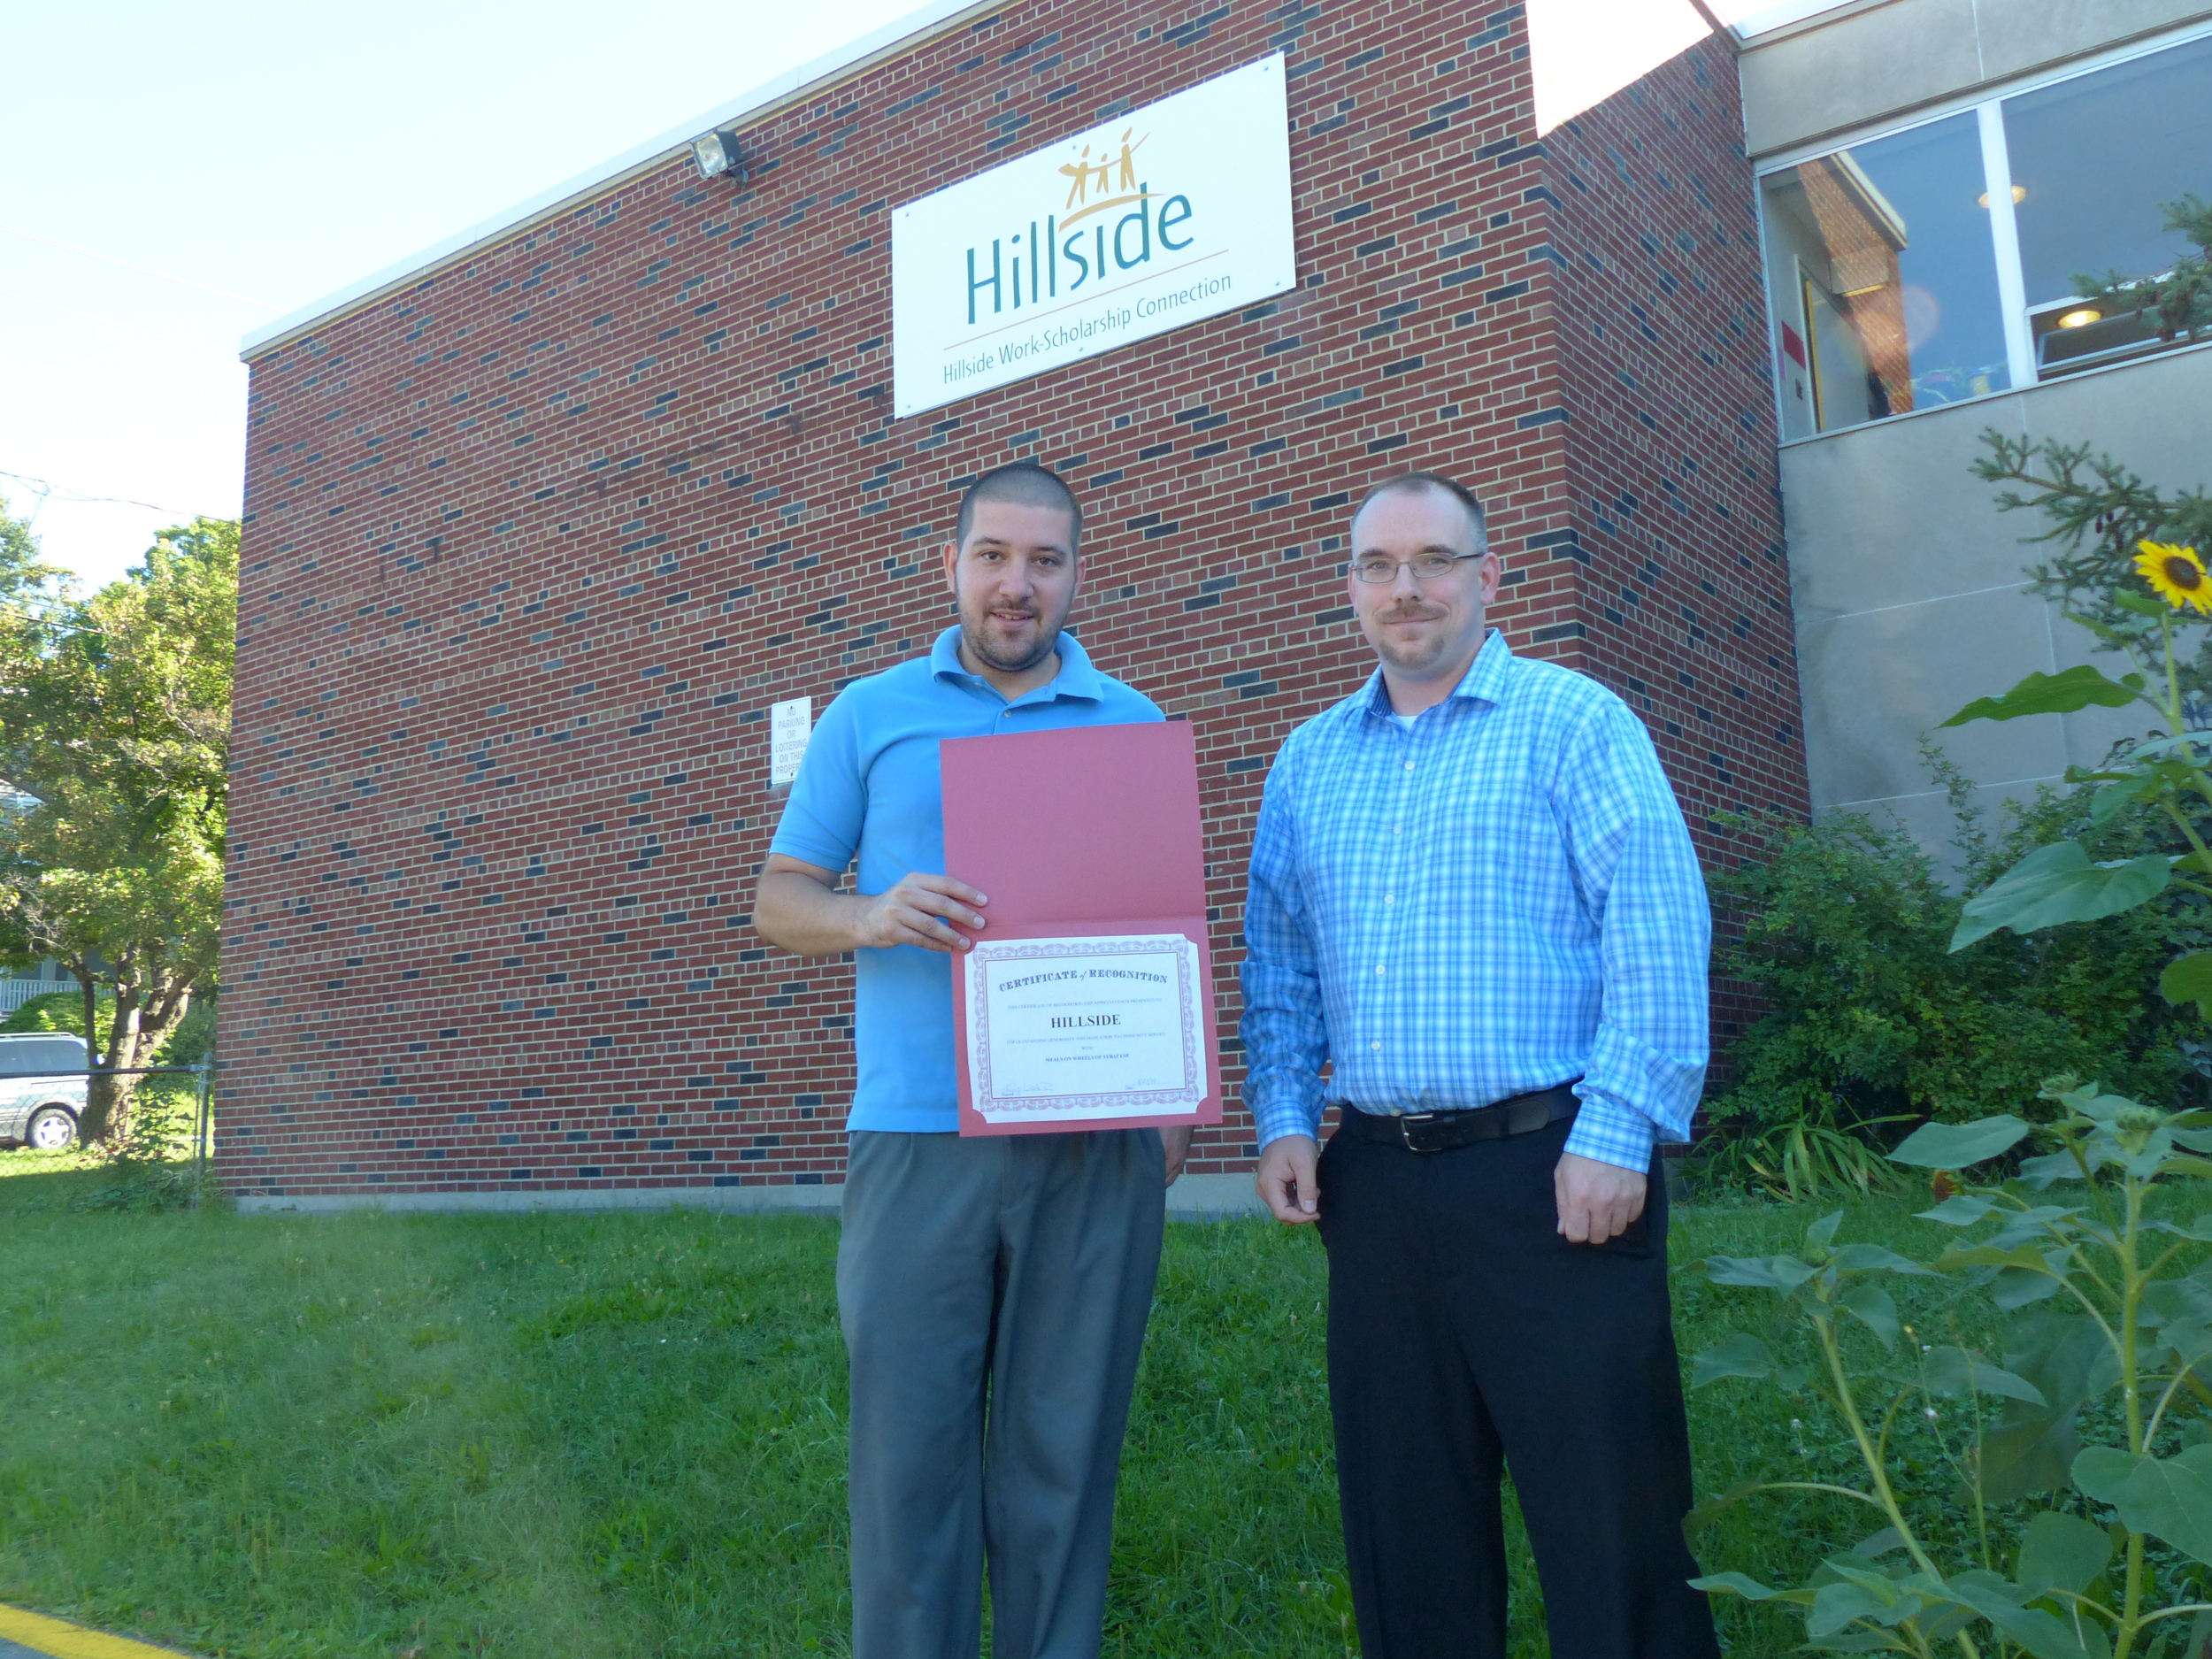 (Pictured L-R) Mike Olsen from Hillside and Michael Watrous from Meals on Wheels of Syracuse